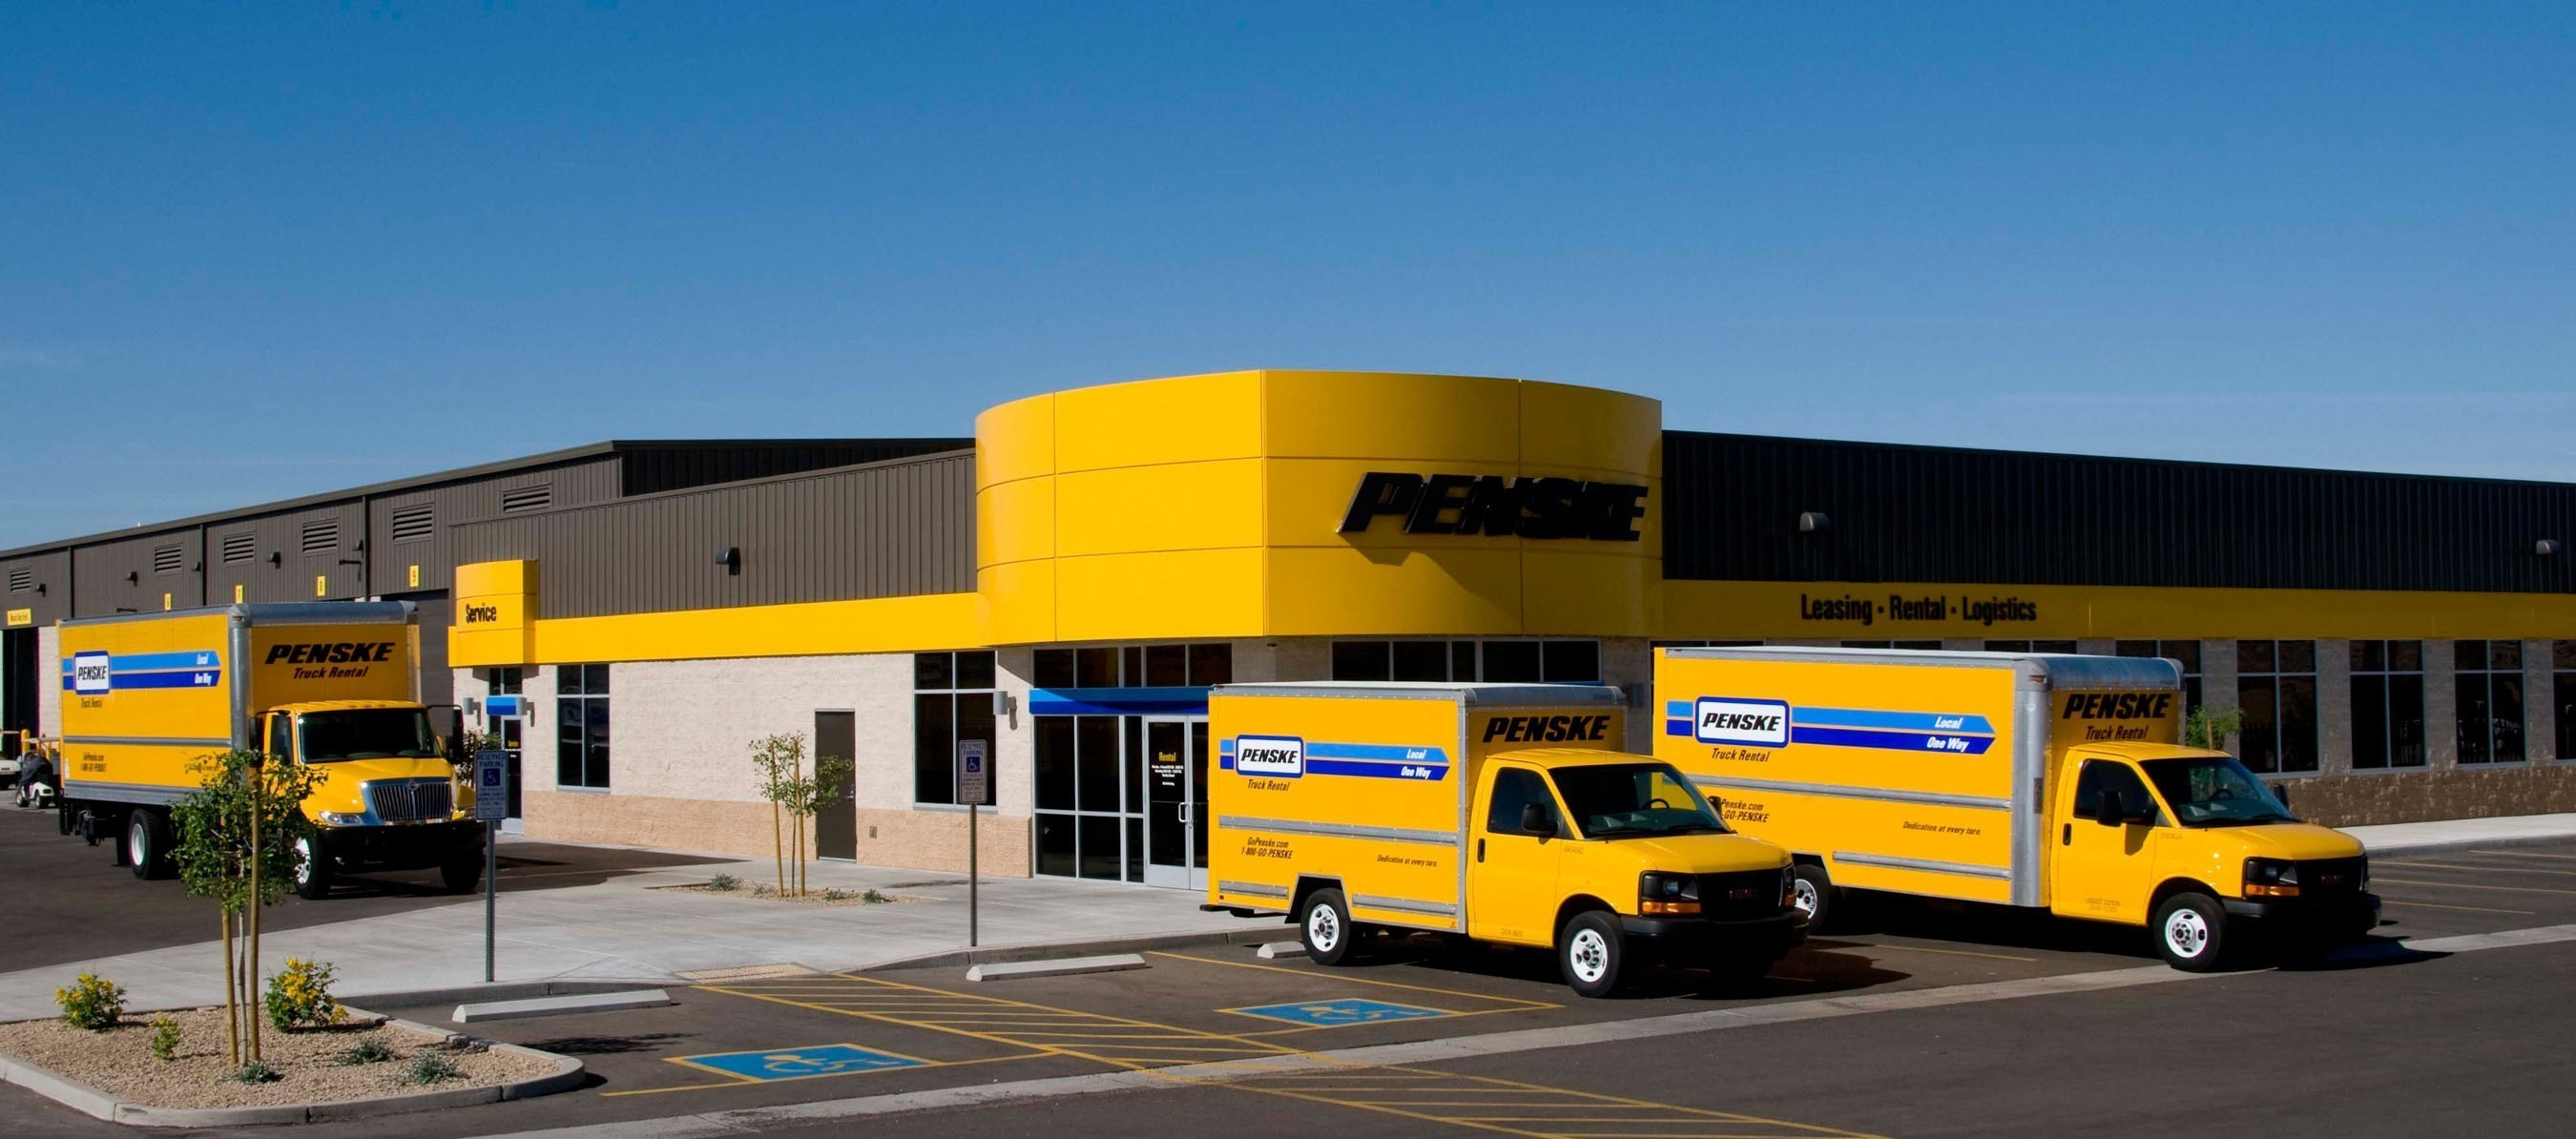 Penske Truck Rental Canada provides clean, reliable rental trucks for both personal and commercial use from the newest and largest fleet in North America.